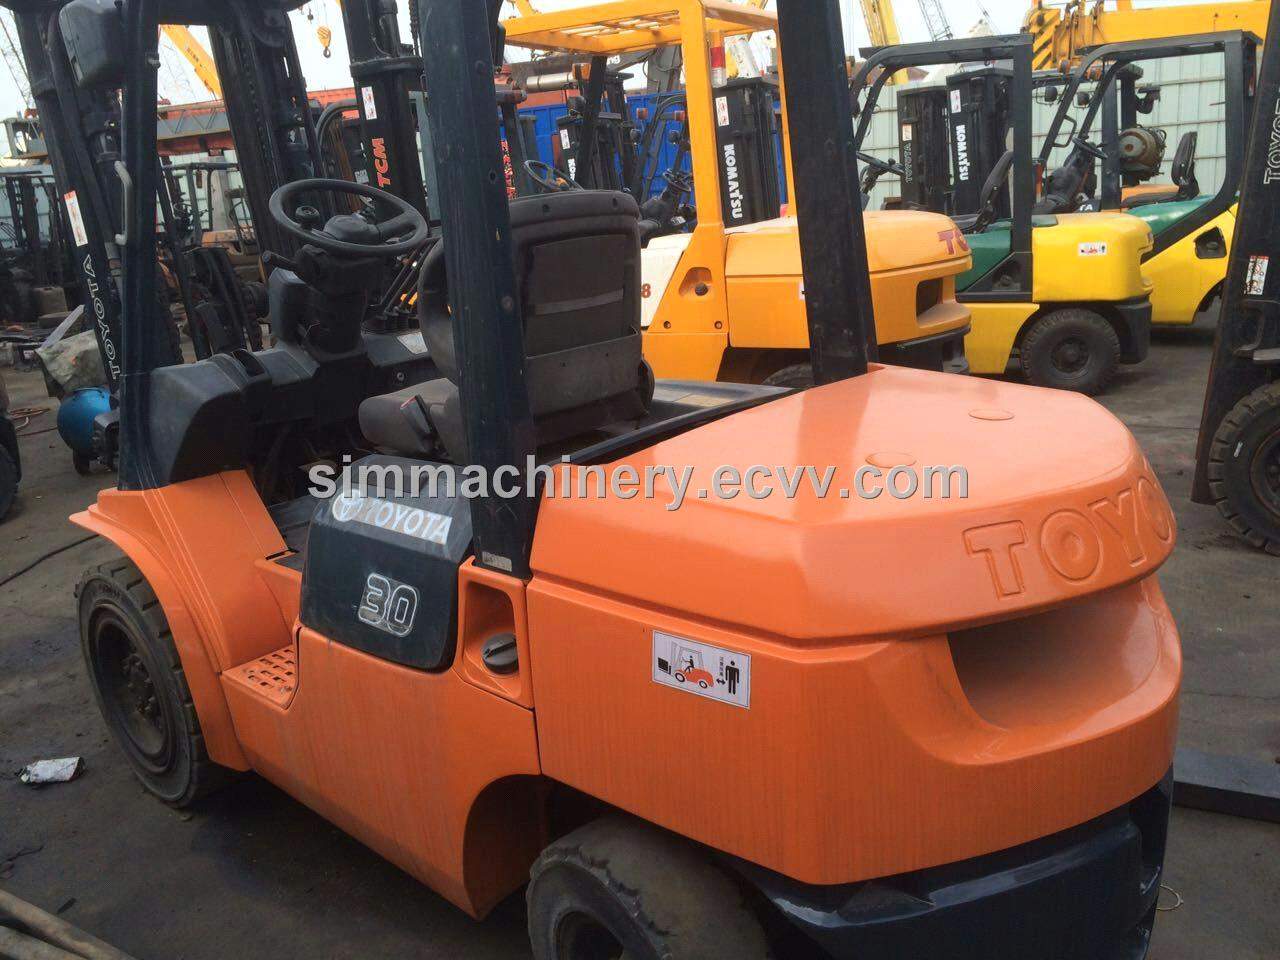 Used toyota 3t forklift with diesel engine second hand toyota 3t lifter diesel engine for sale